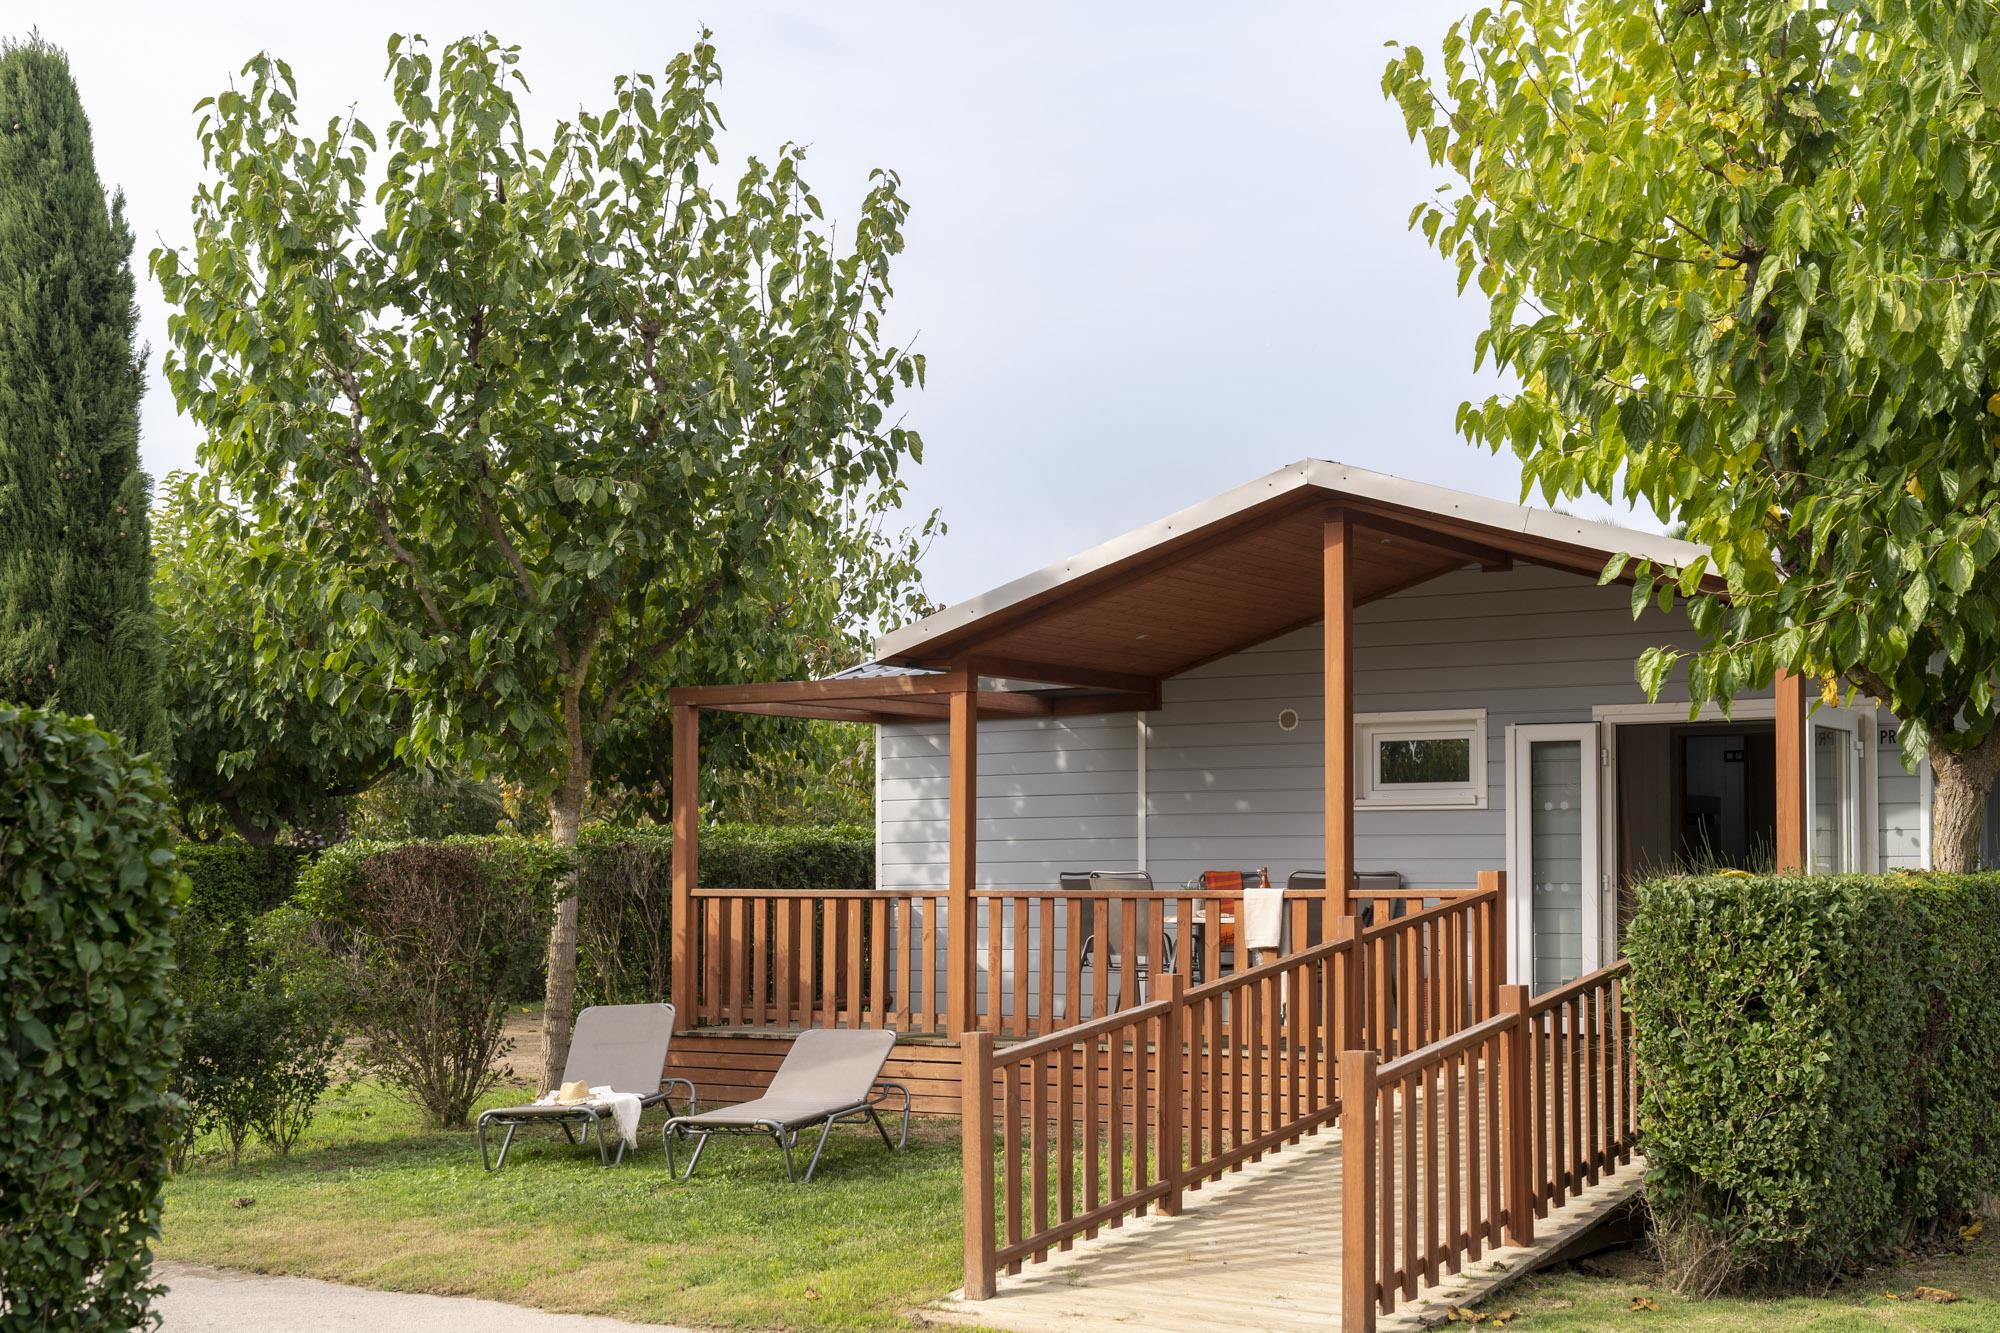 Accommodation - Bungalow Especial Premium - For Disabled Persons - Camping L'Amfora